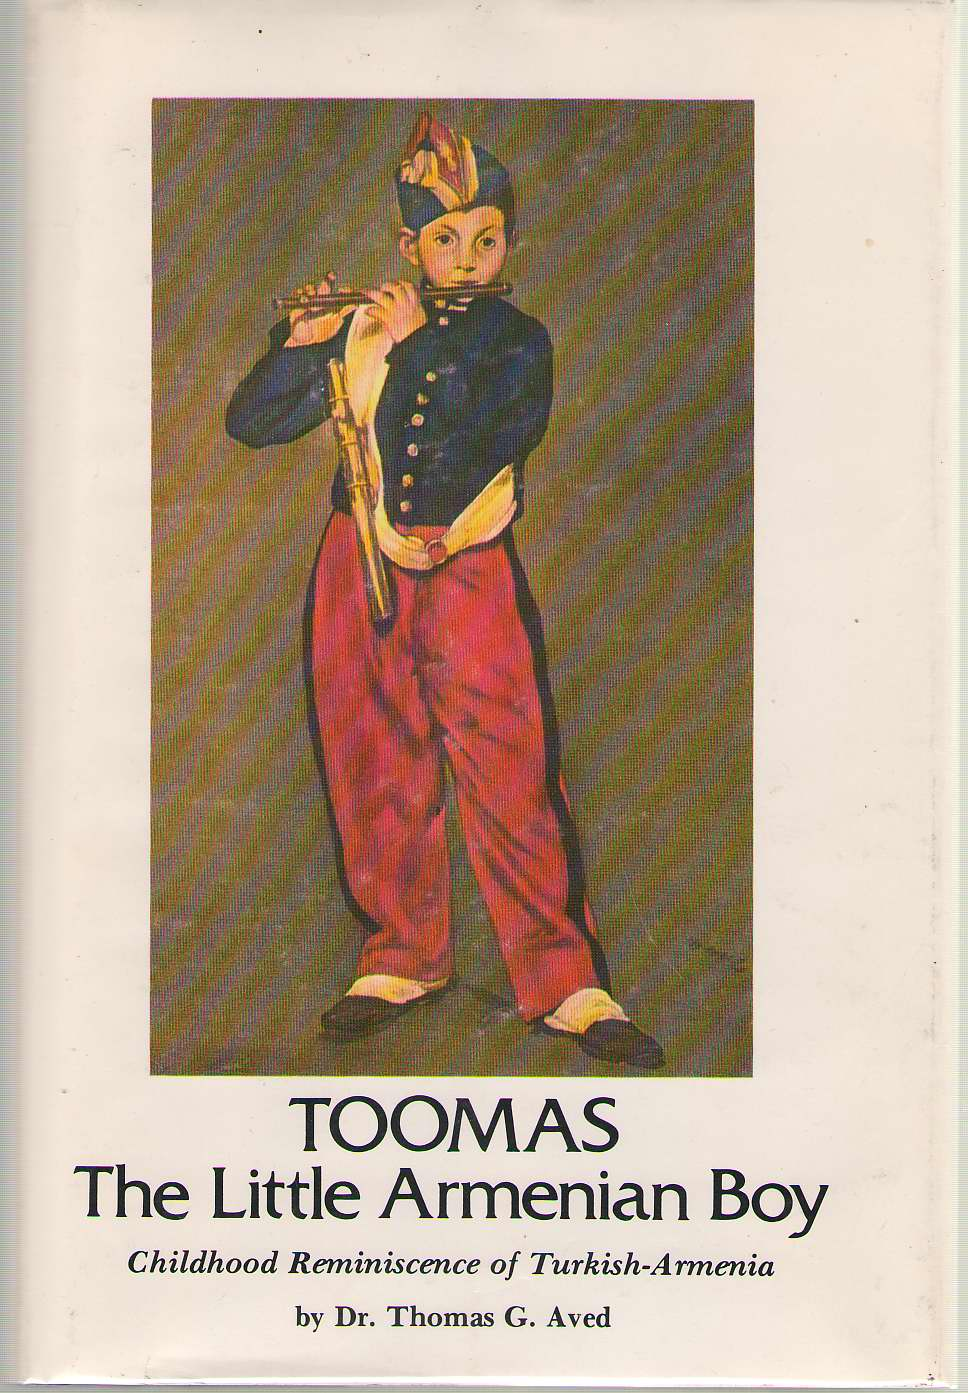 Toomas, The Little Armenian Boy Childhood Reminiscence of Turkish-Armenia, Aved, Thomas G.